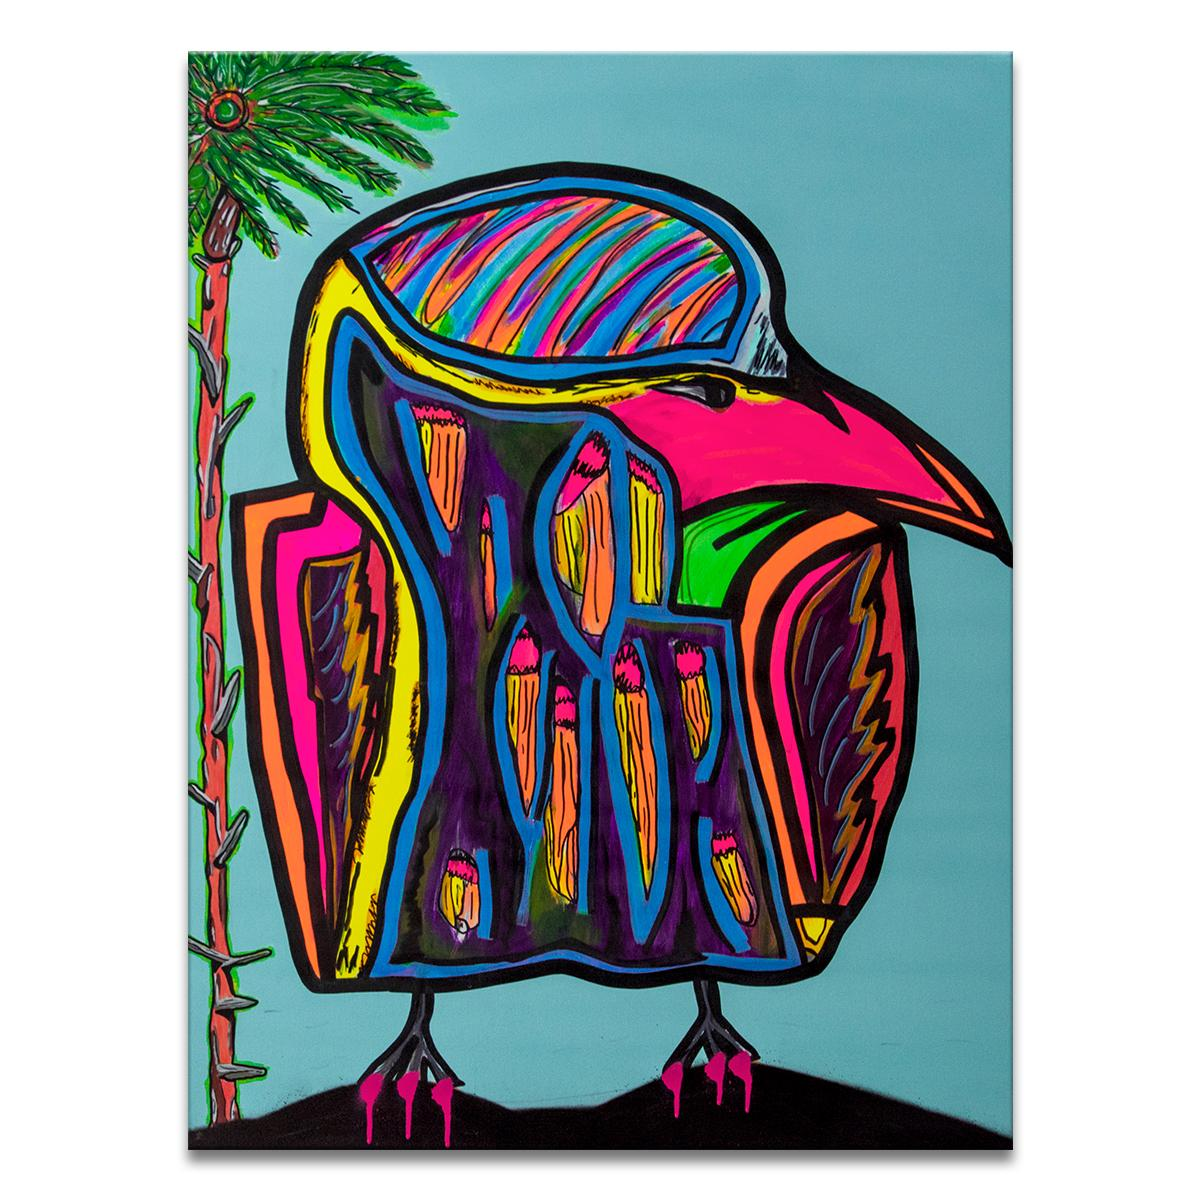 'Untitled X' Wrapped Canvas Original Street Art Painting by Big Bear